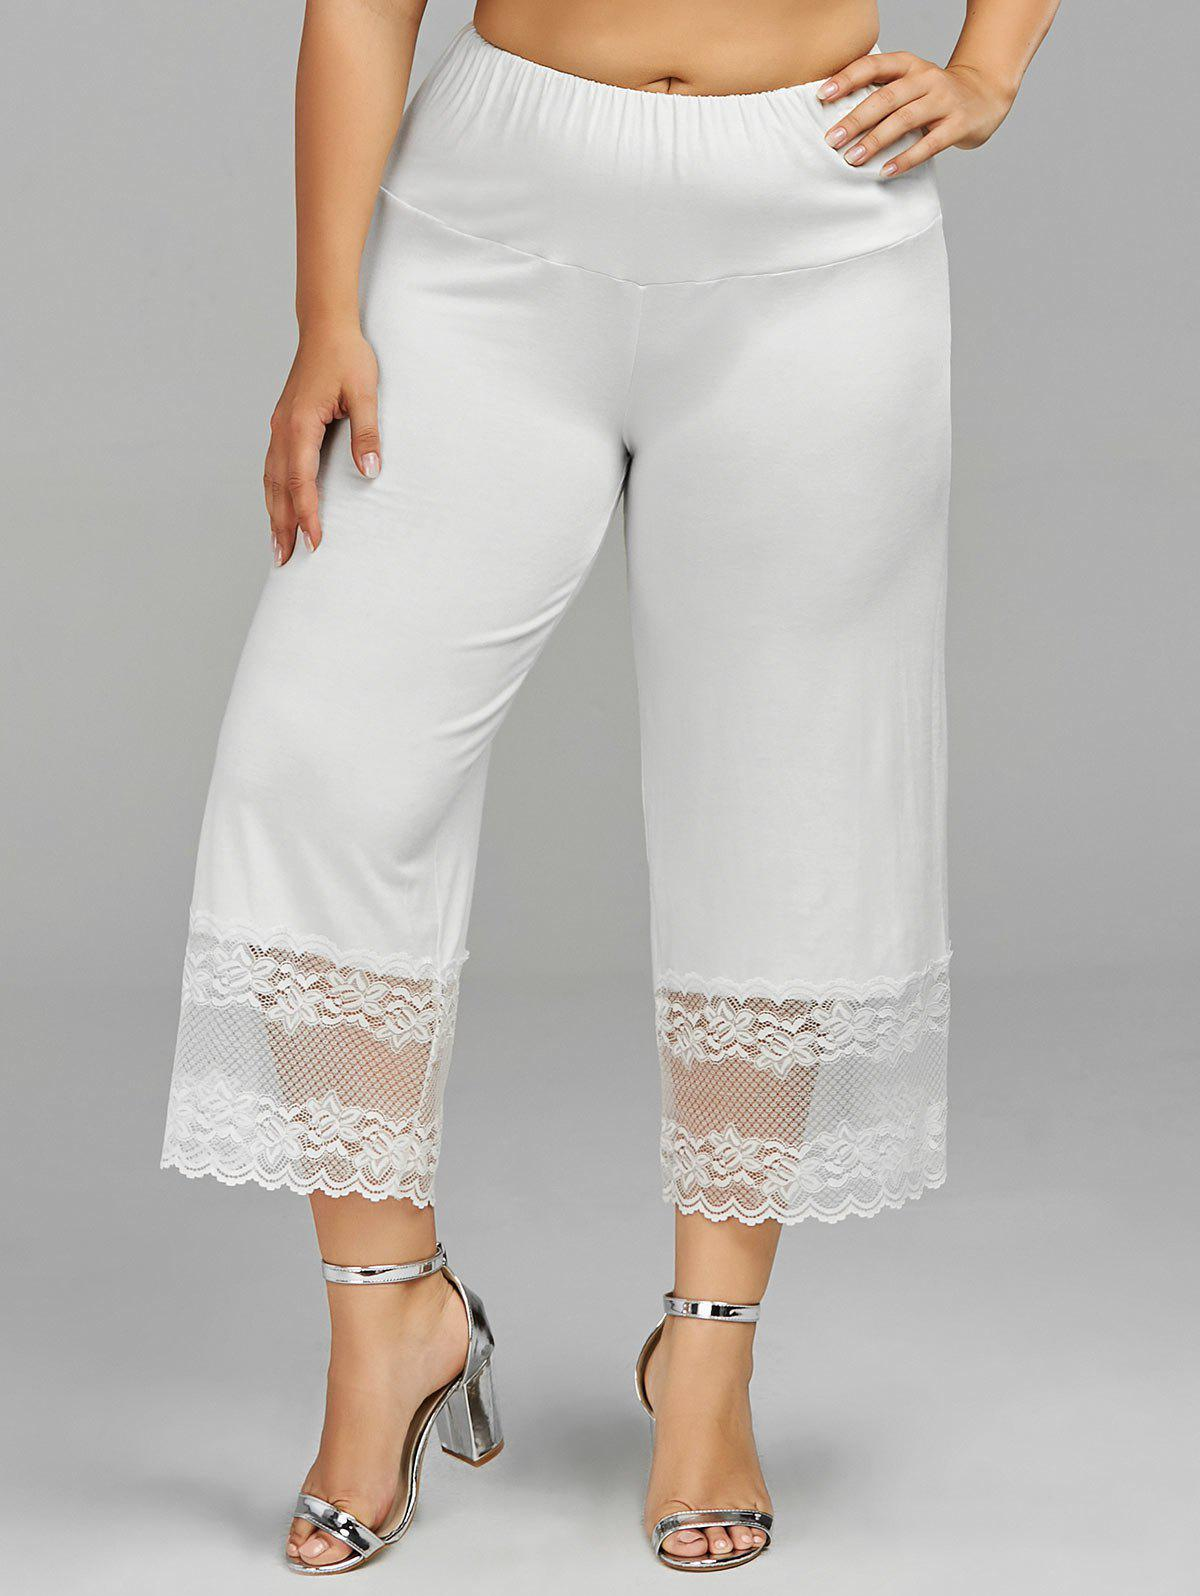 Lace Trim Palazzo Plus Size Pants - WHITE 4XL